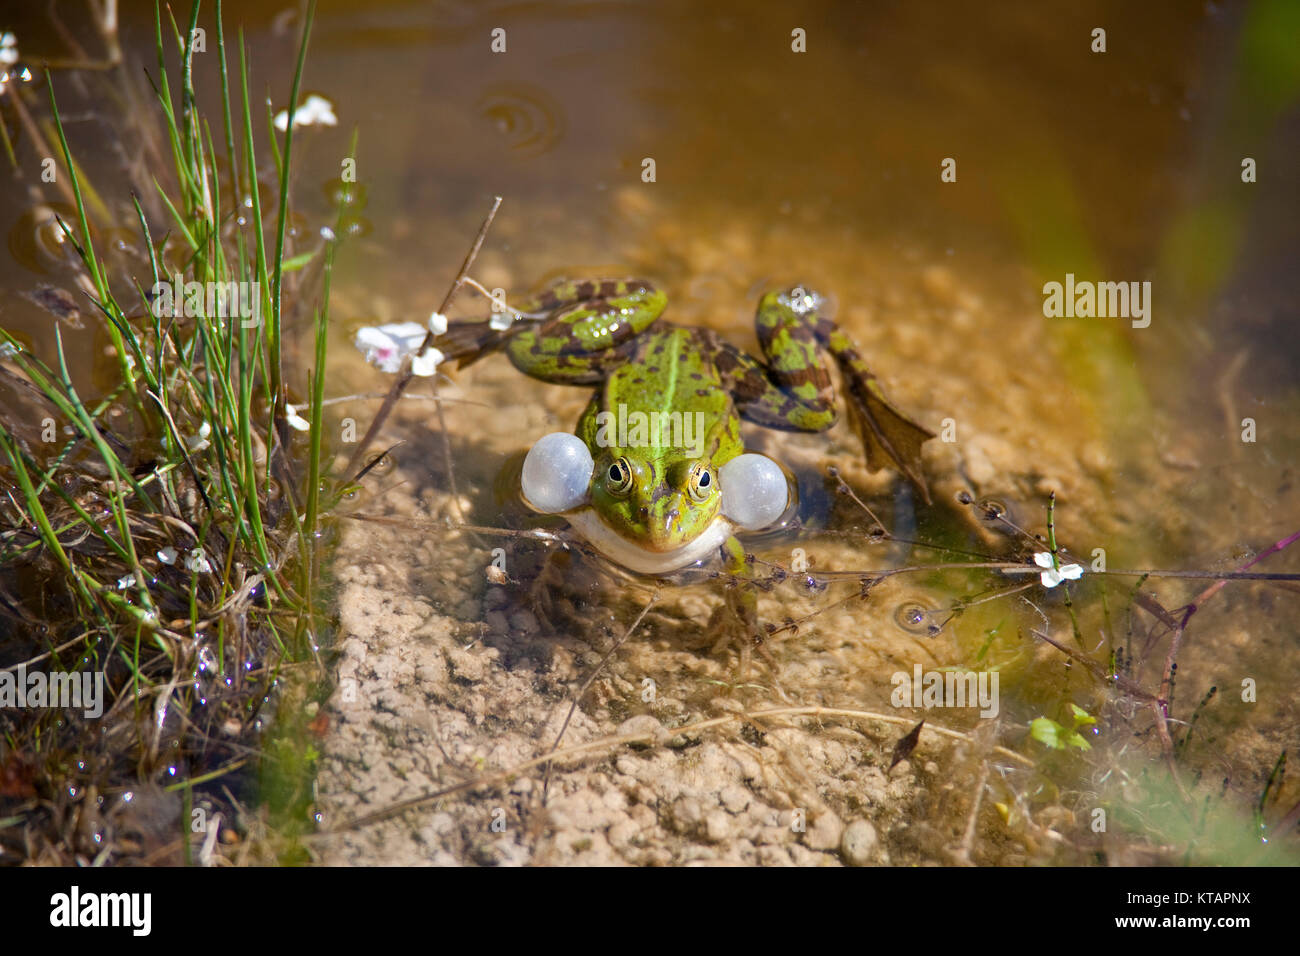 Edible frog, Common water frog (Rana kl. esculenta), also named green frog, in a pond at Middelhagen, Moenchgut, - Stock Image